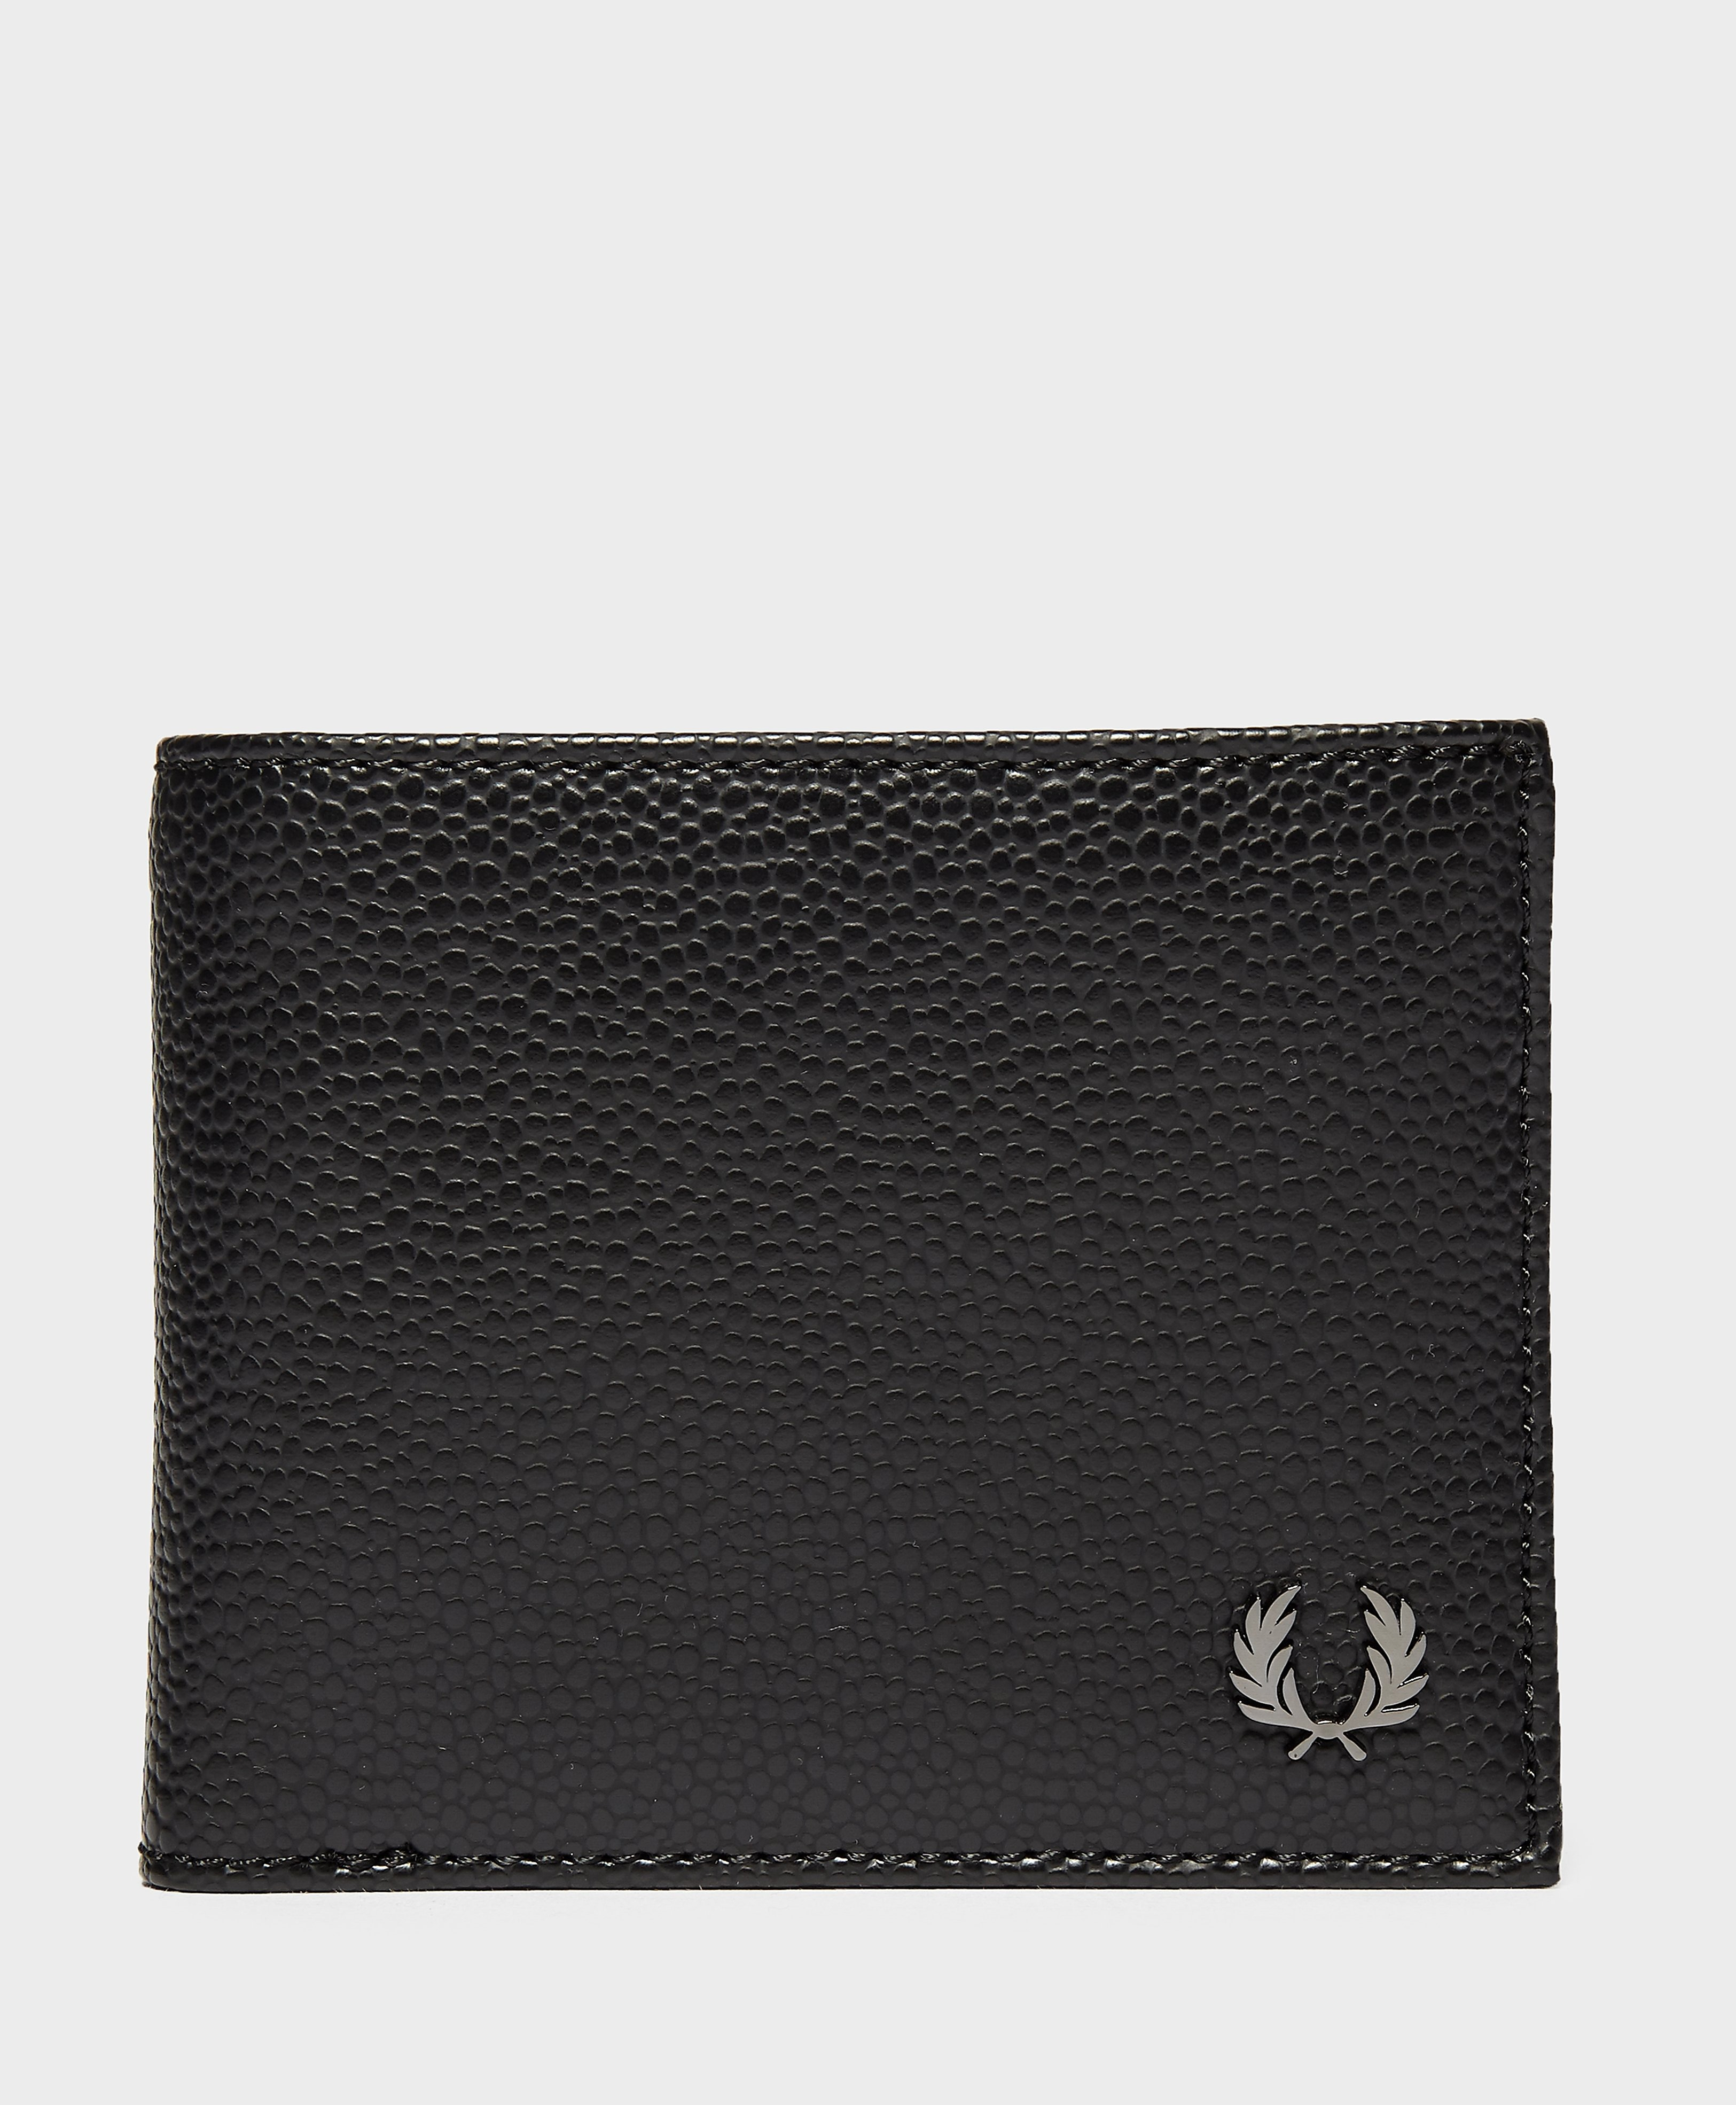 Fred Perry Scotch Billfold Wallet